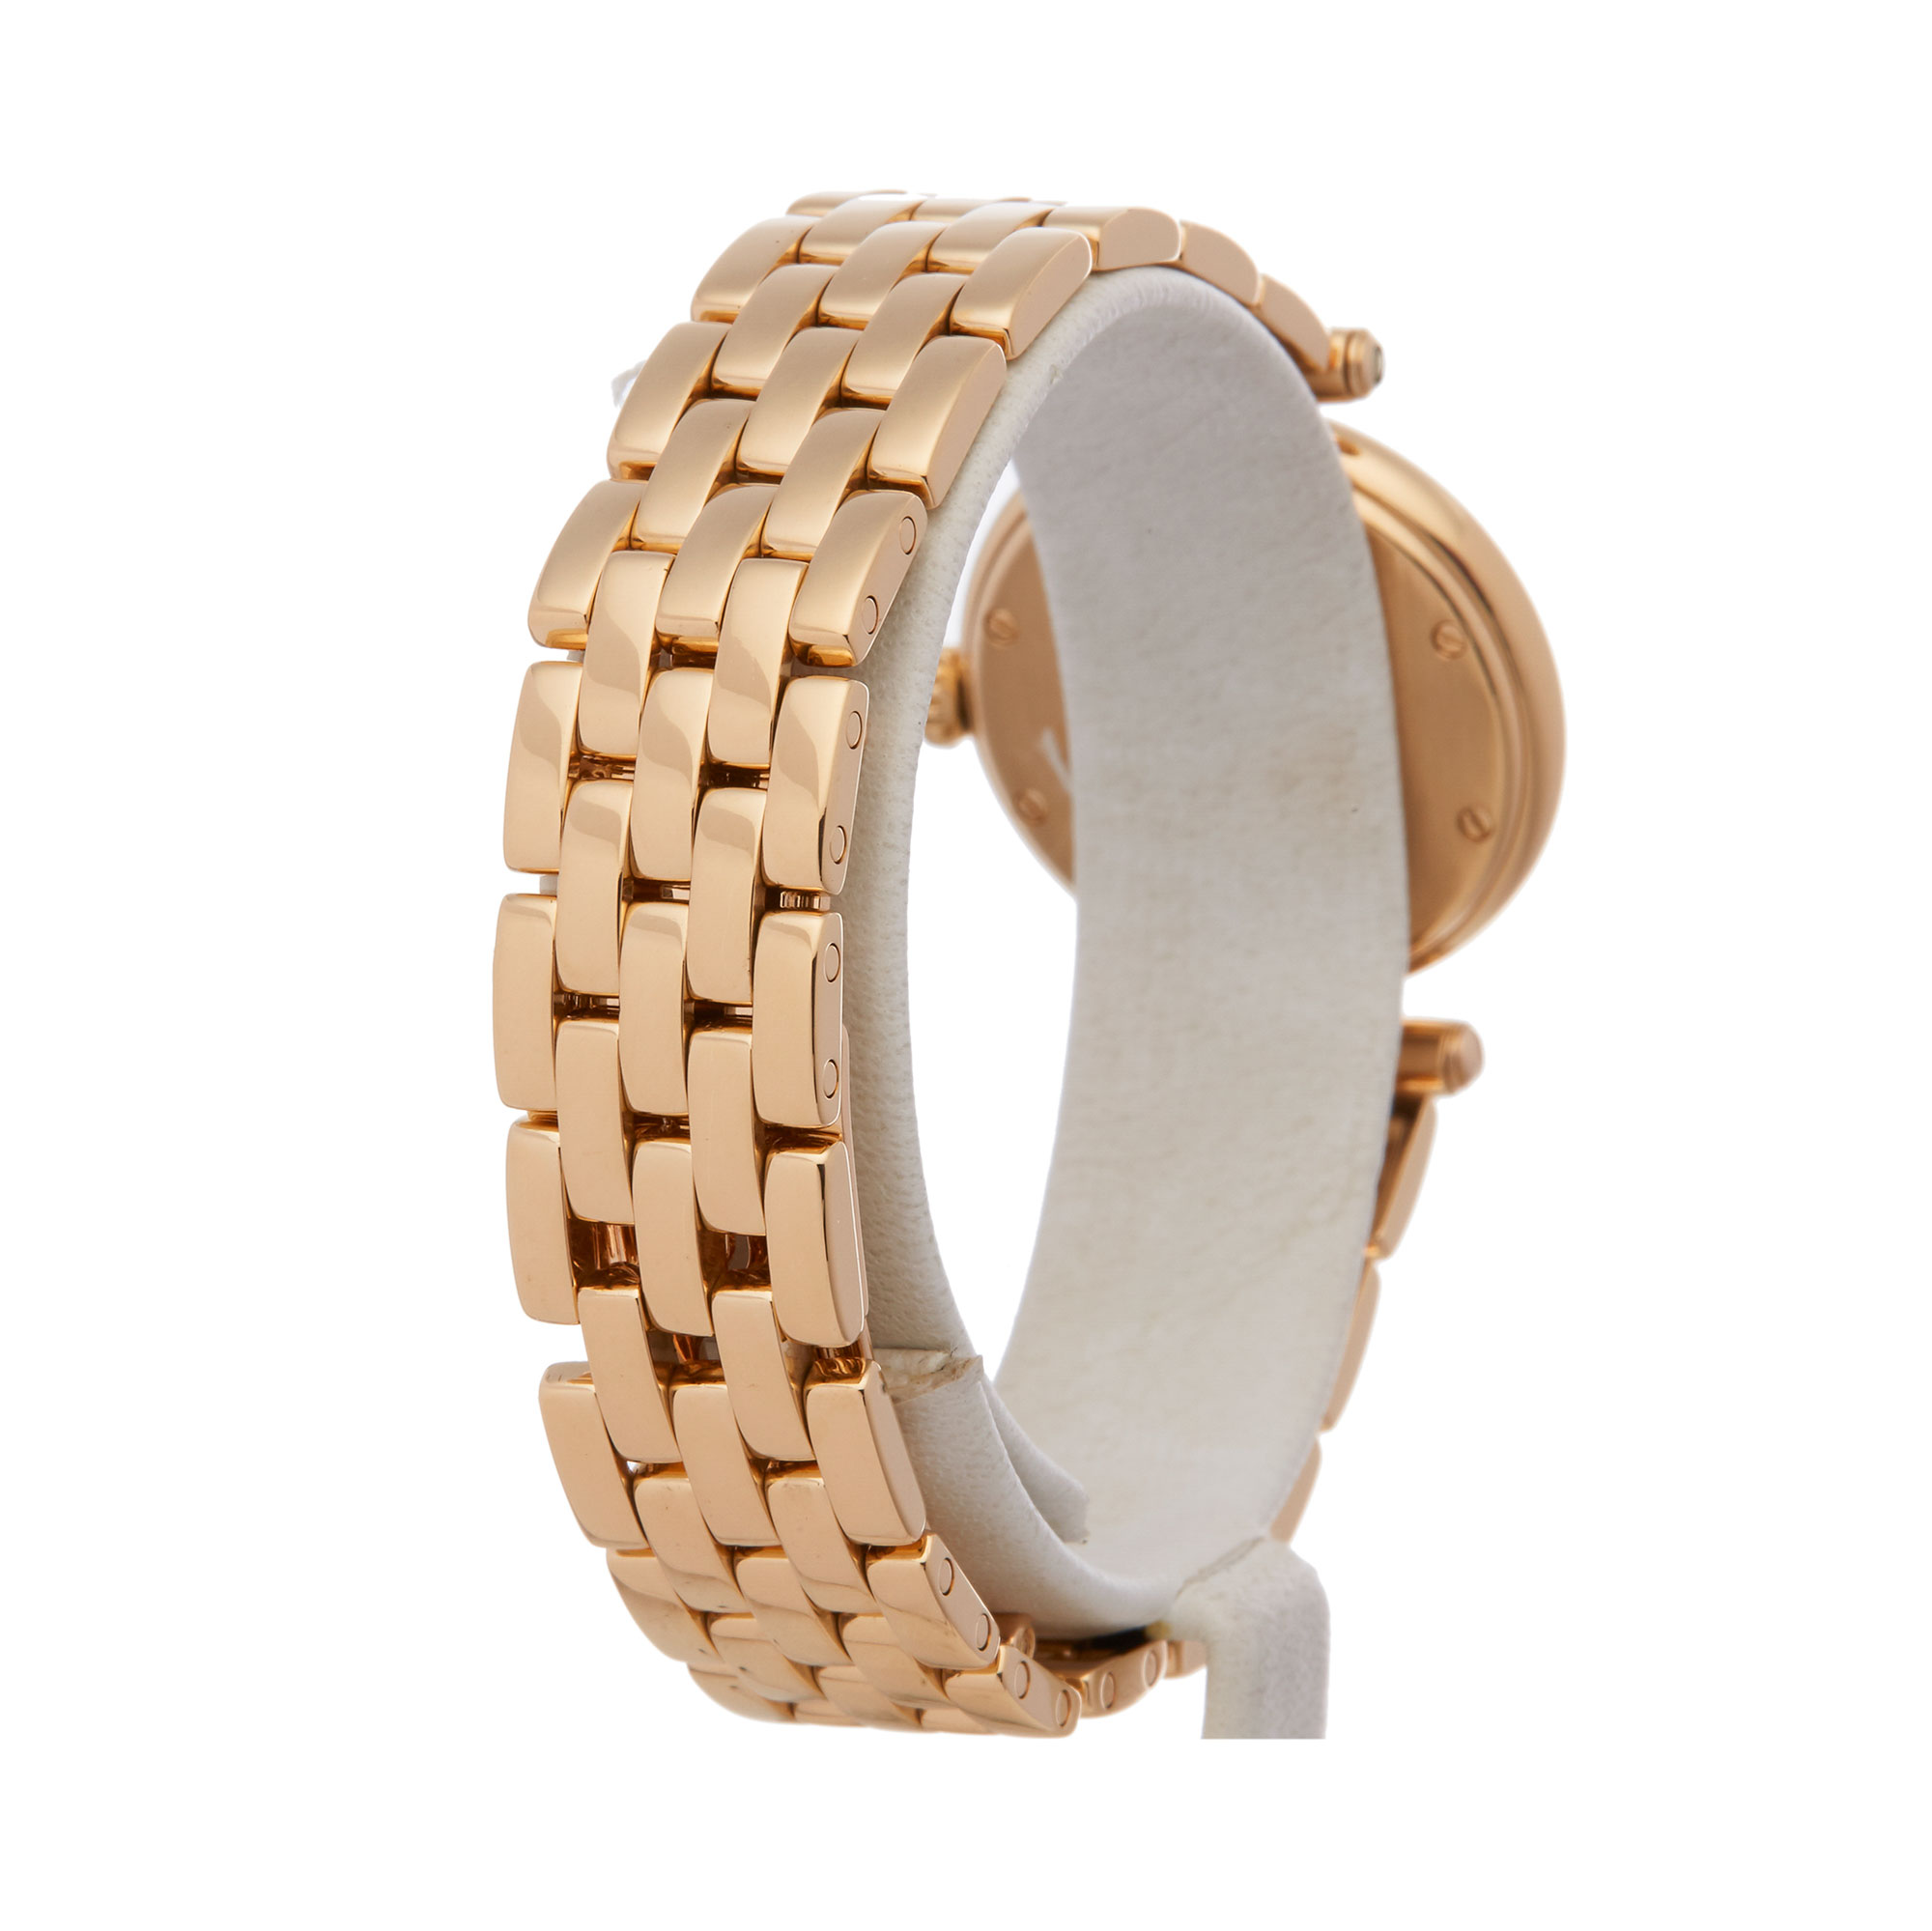 Cartier Panthère Vendome Ladies Yellow Gold Watch - Image 5 of 9